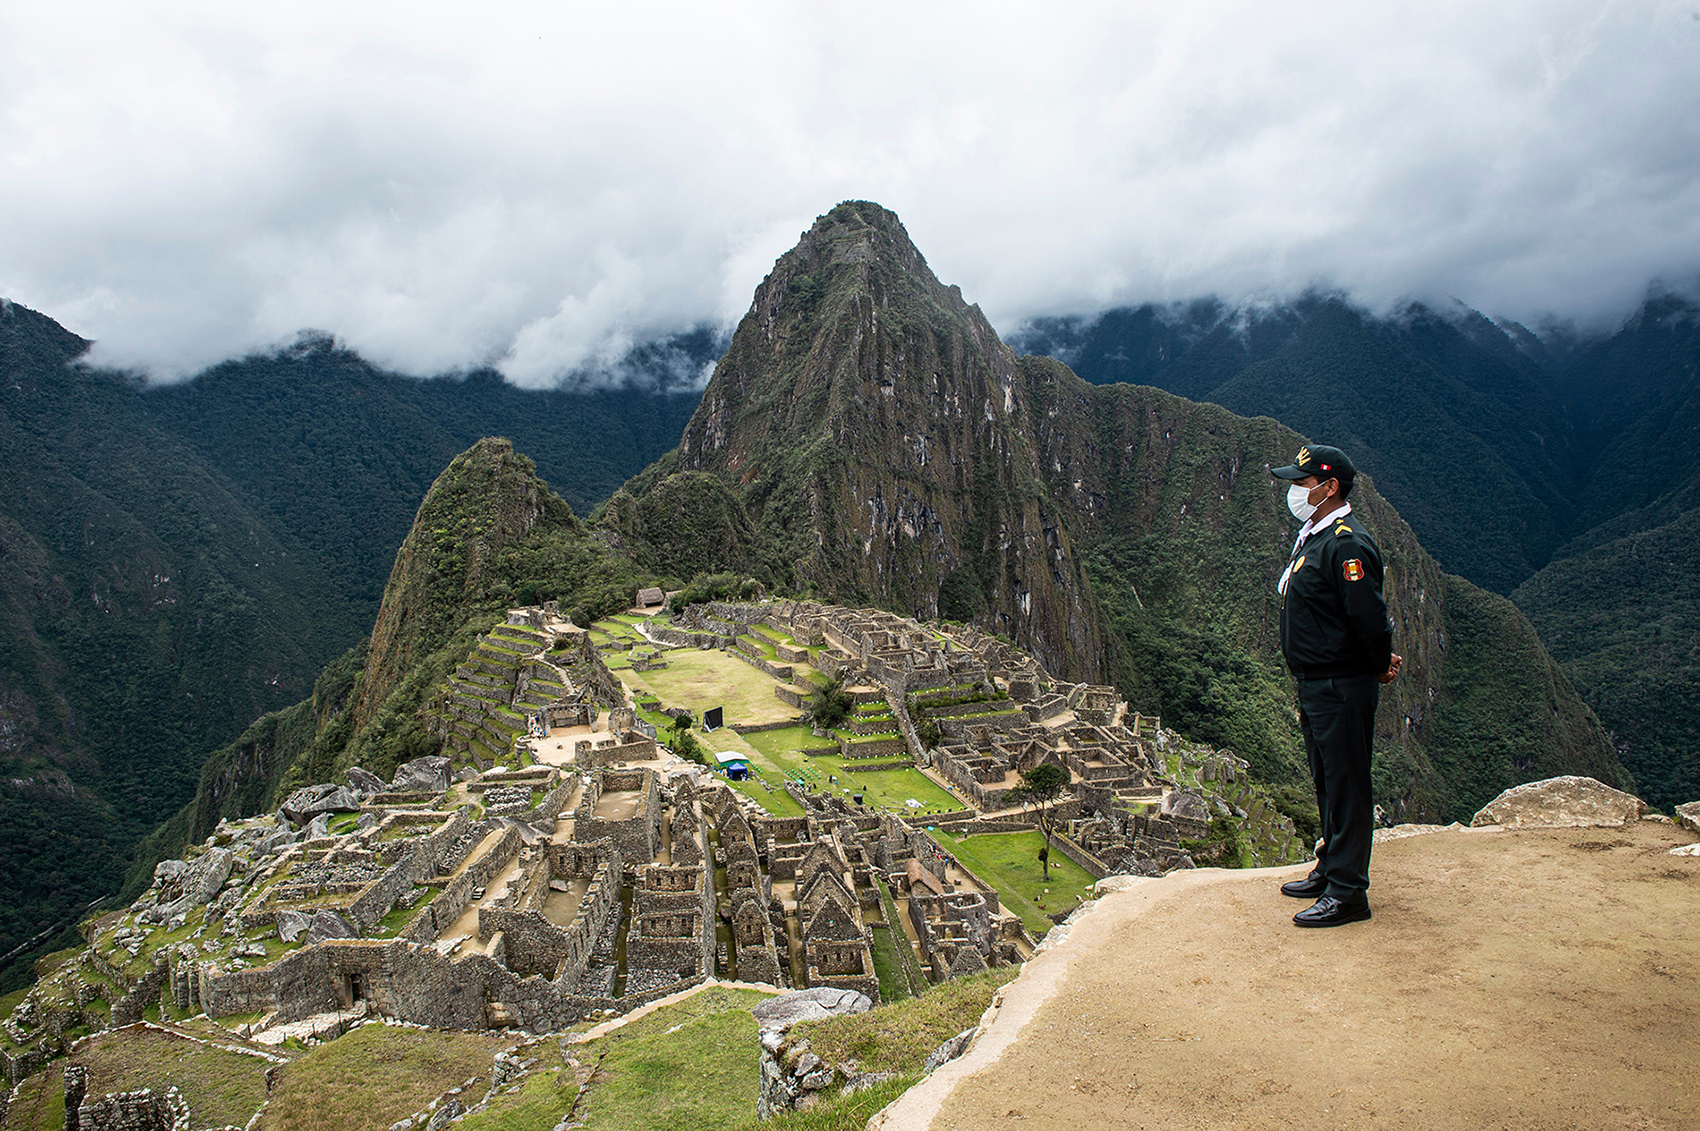 A tourist policeman is seen on duty at the archaeological site of Machu Picchu, in Cusco, Peru